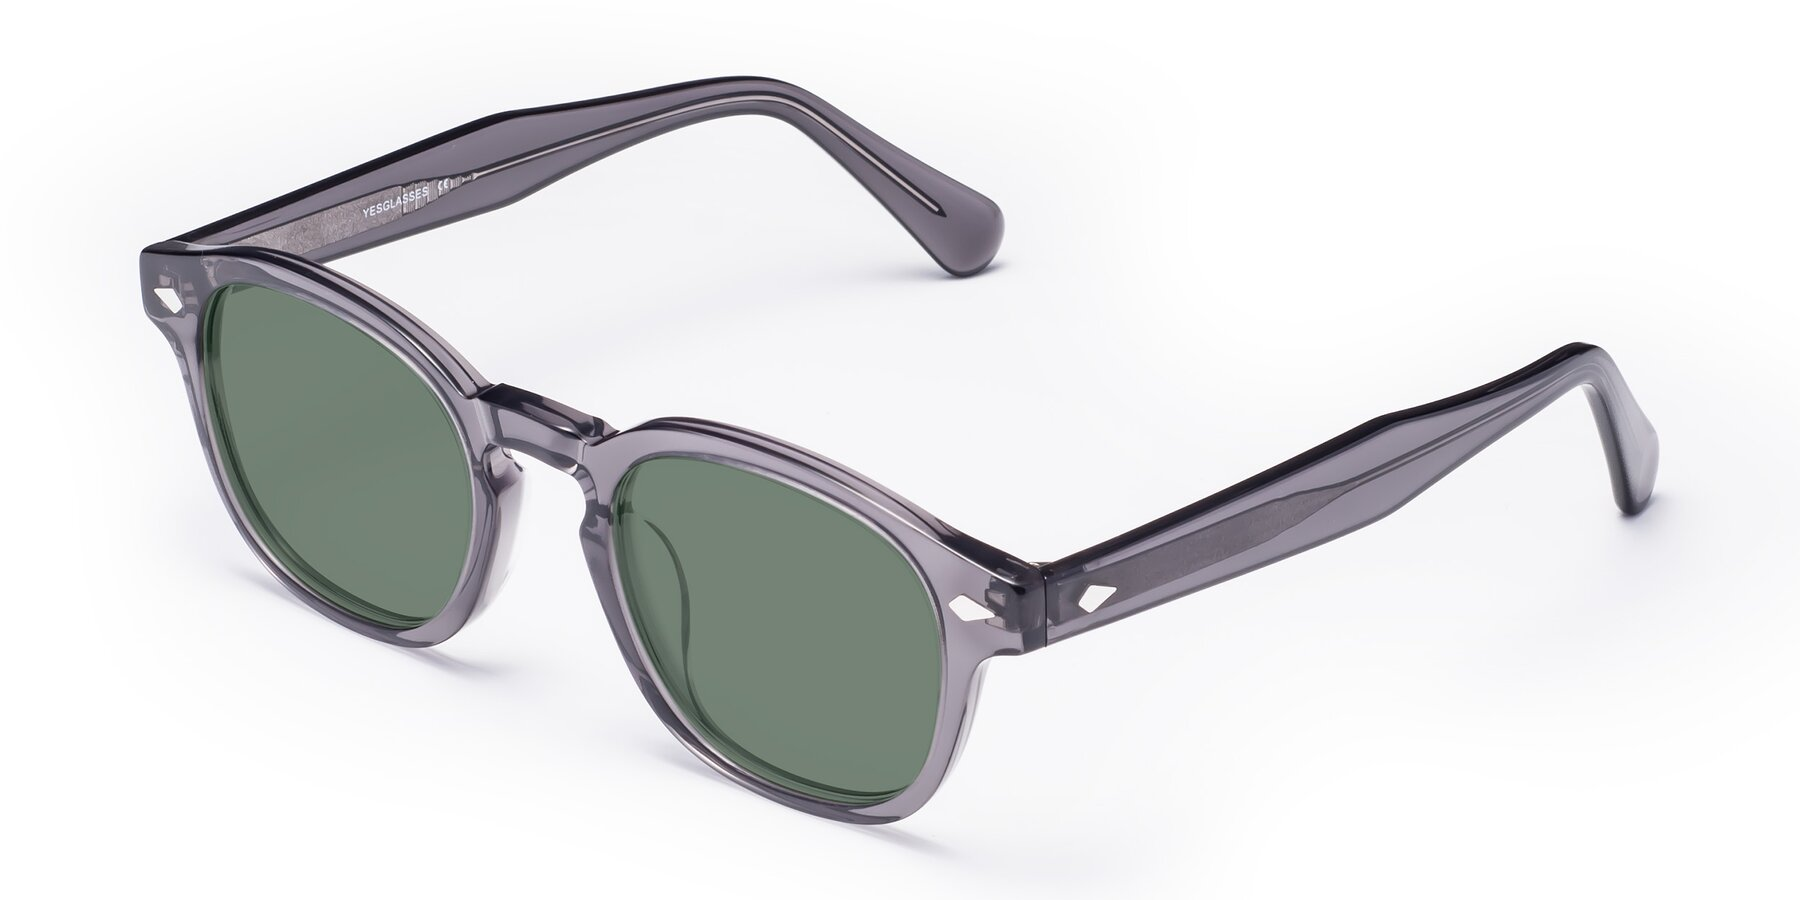 Angle of WALL-E in Translucent Gray with Medium Green Tinted Lenses